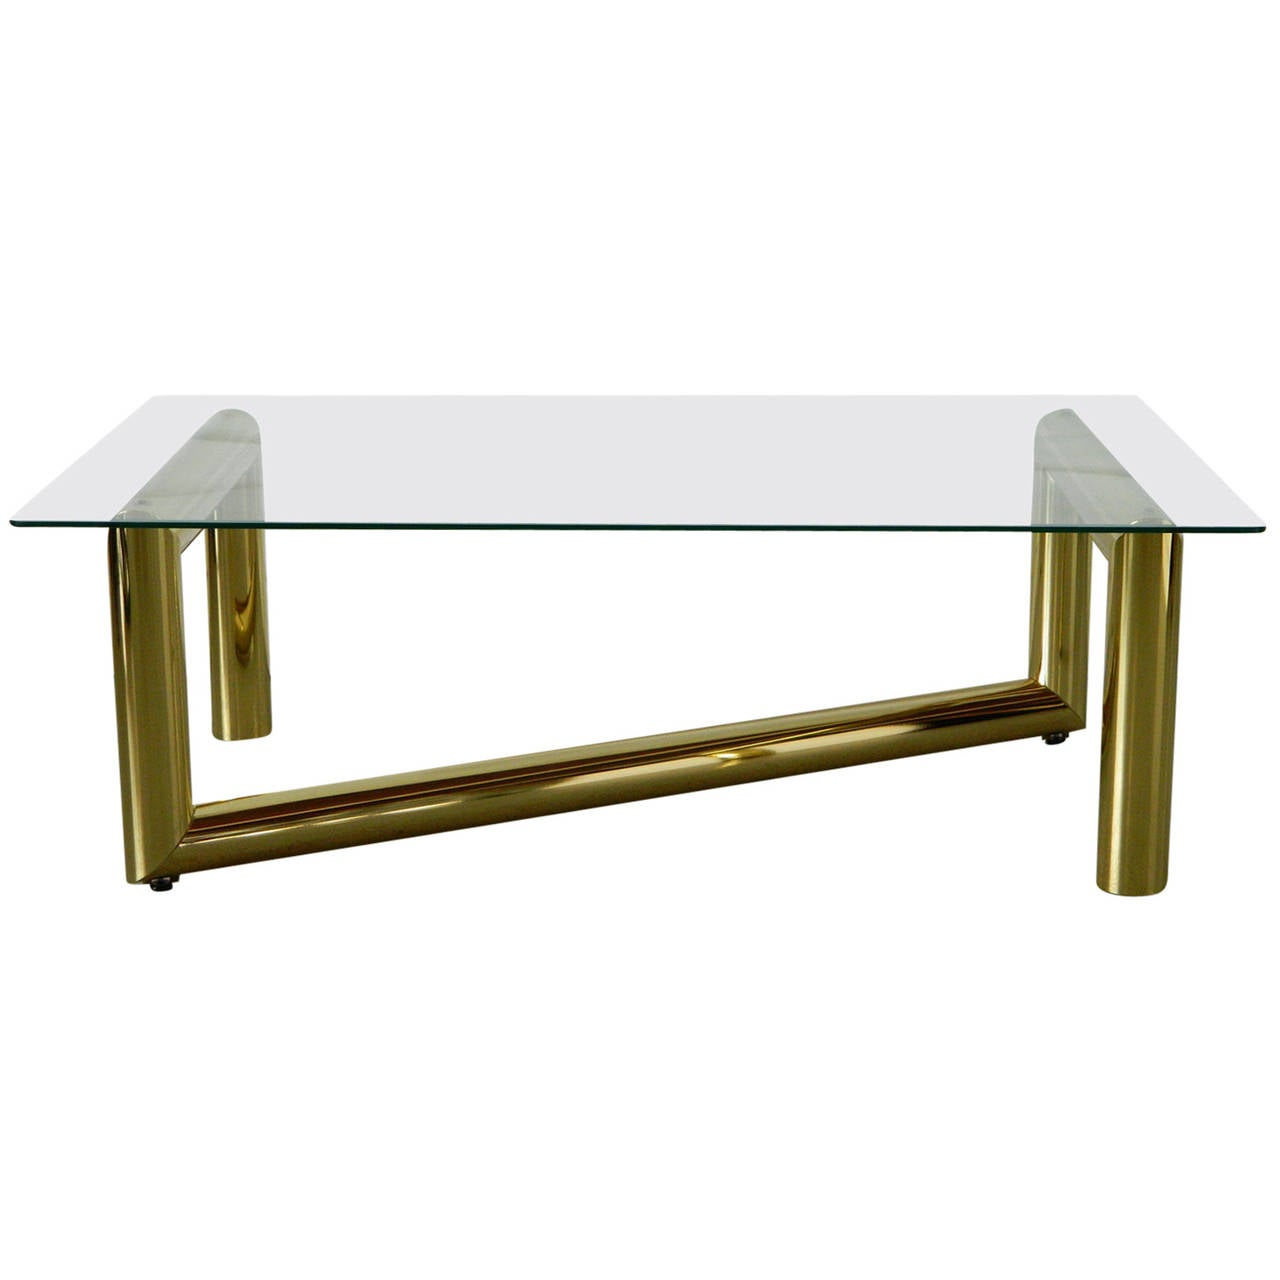 tubular brass and glass coffee table attributed to karl springer